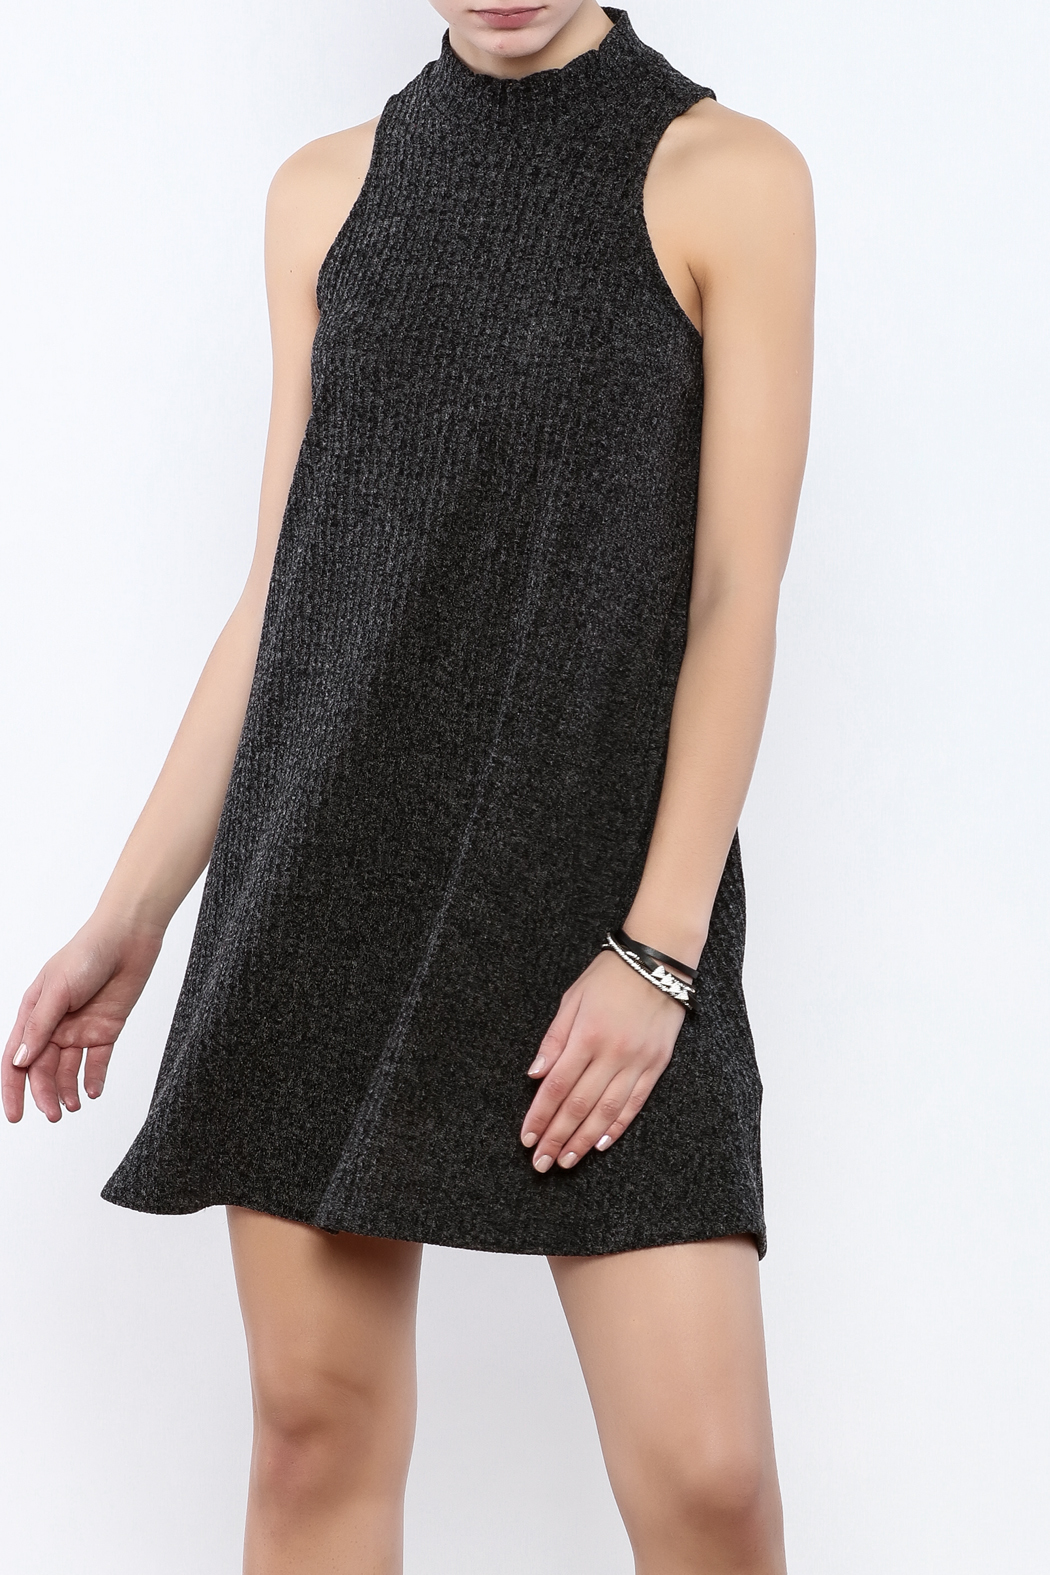 Veronica M Sleeveless Sweater Dress - Front Cropped Image